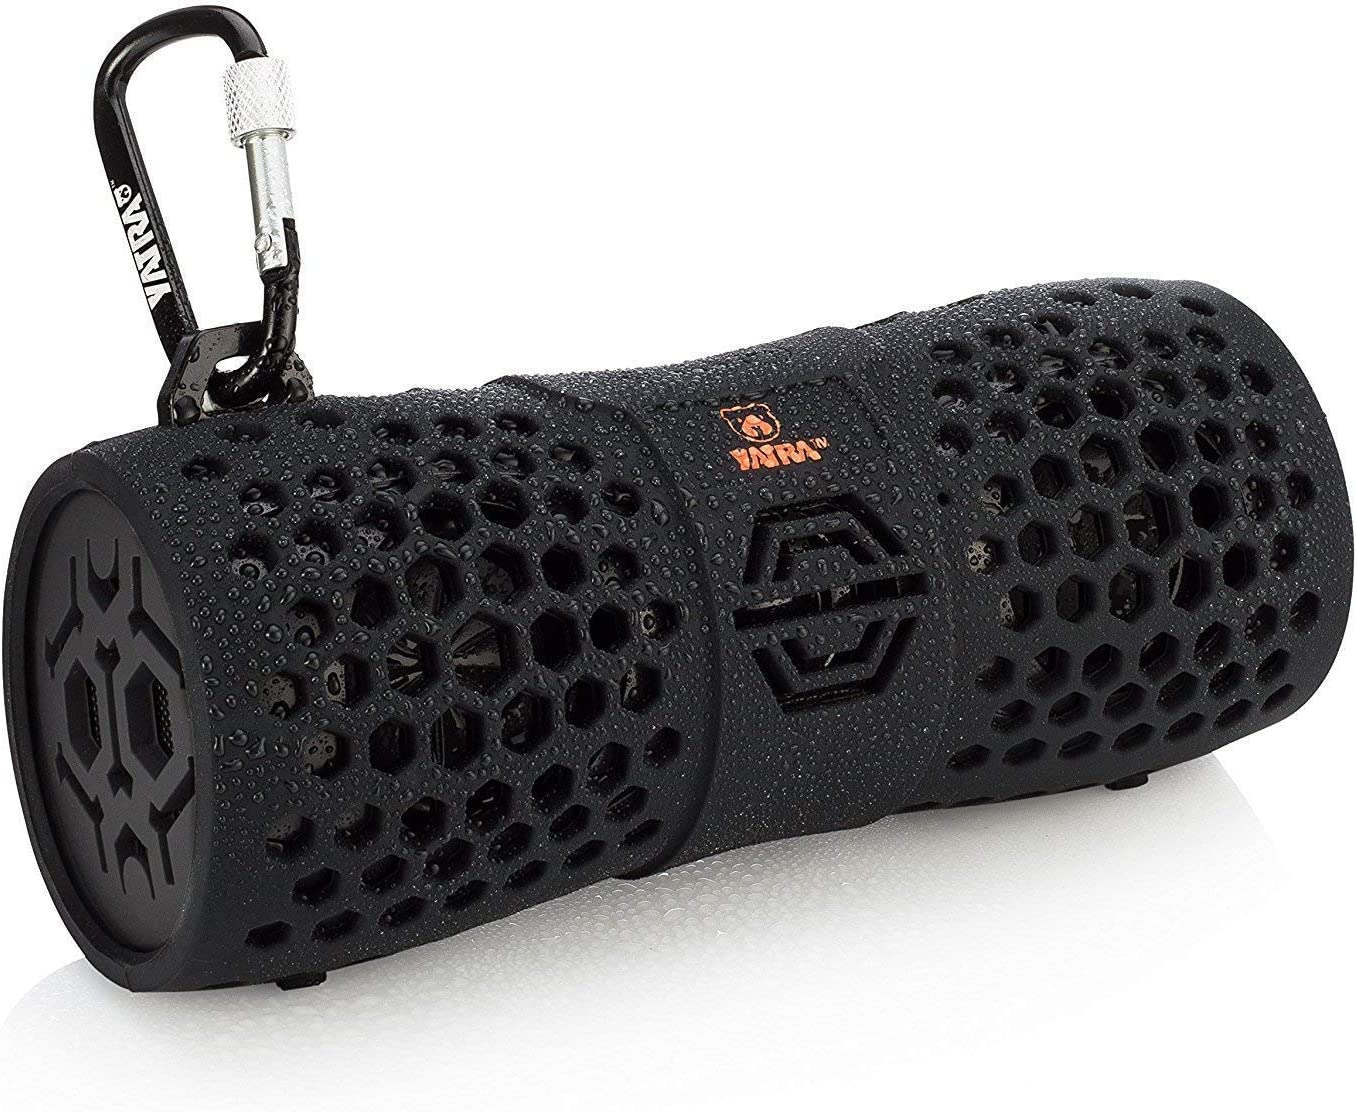 Yatra Aquatune 12610 - Portable Waterproof Rugged Wireless Bluetooth Speaker Compatible with iPhone, iPad, Samsung, Android, Tablet, or Smartphone (Black)